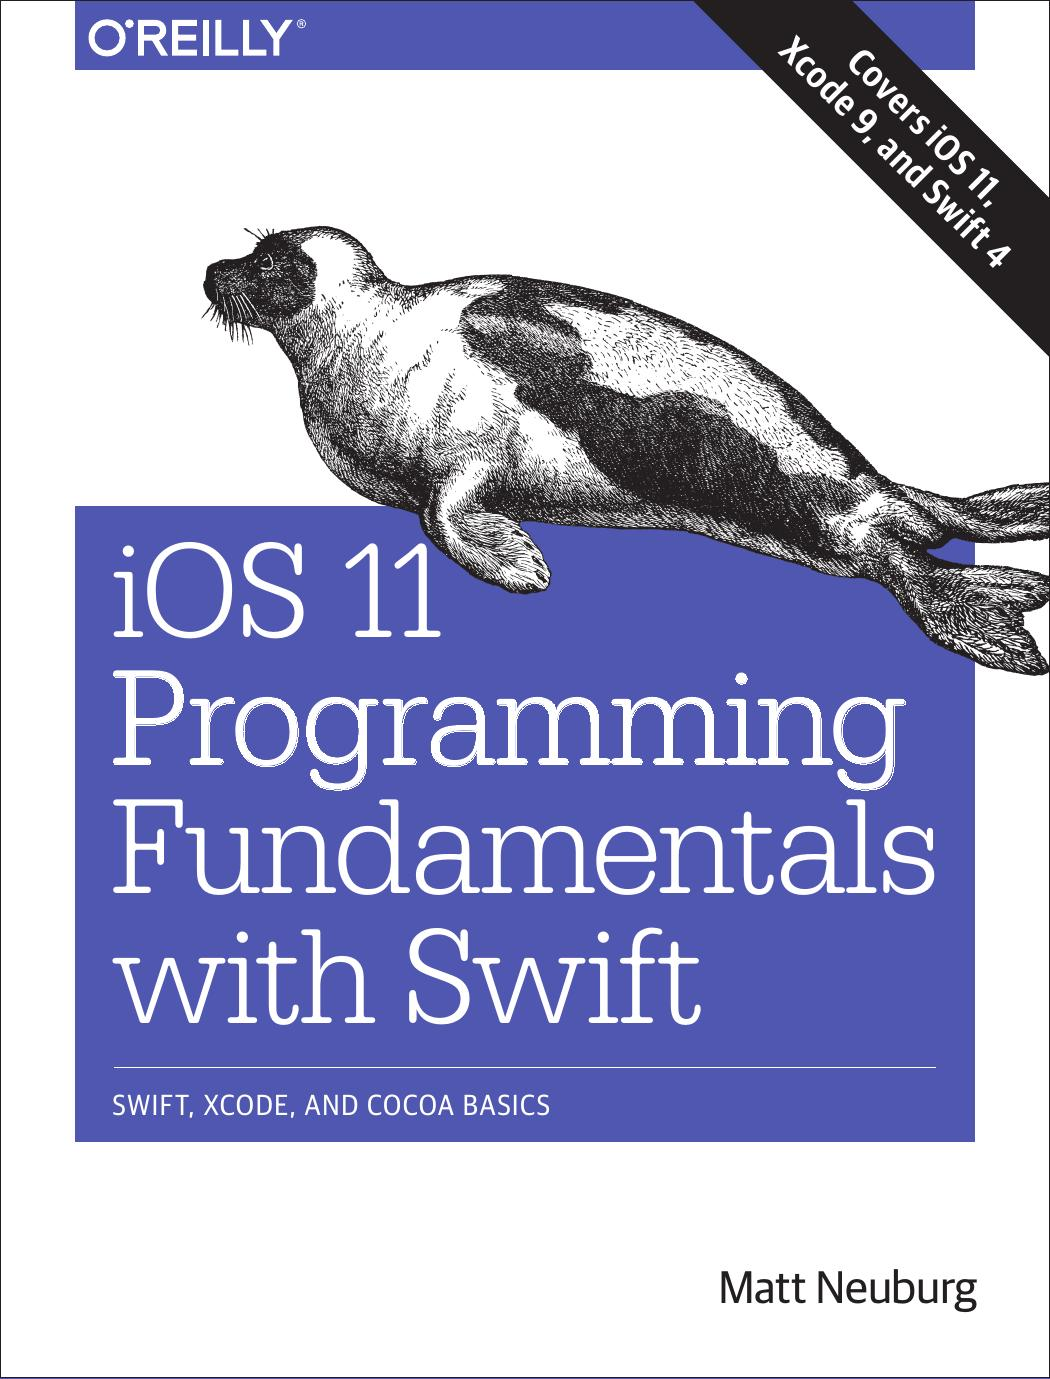 iOS 11 Programming Fundamentals with Swift: Swift, Xcode, and Cocoa Basics 1st Edition Pdf Free Download